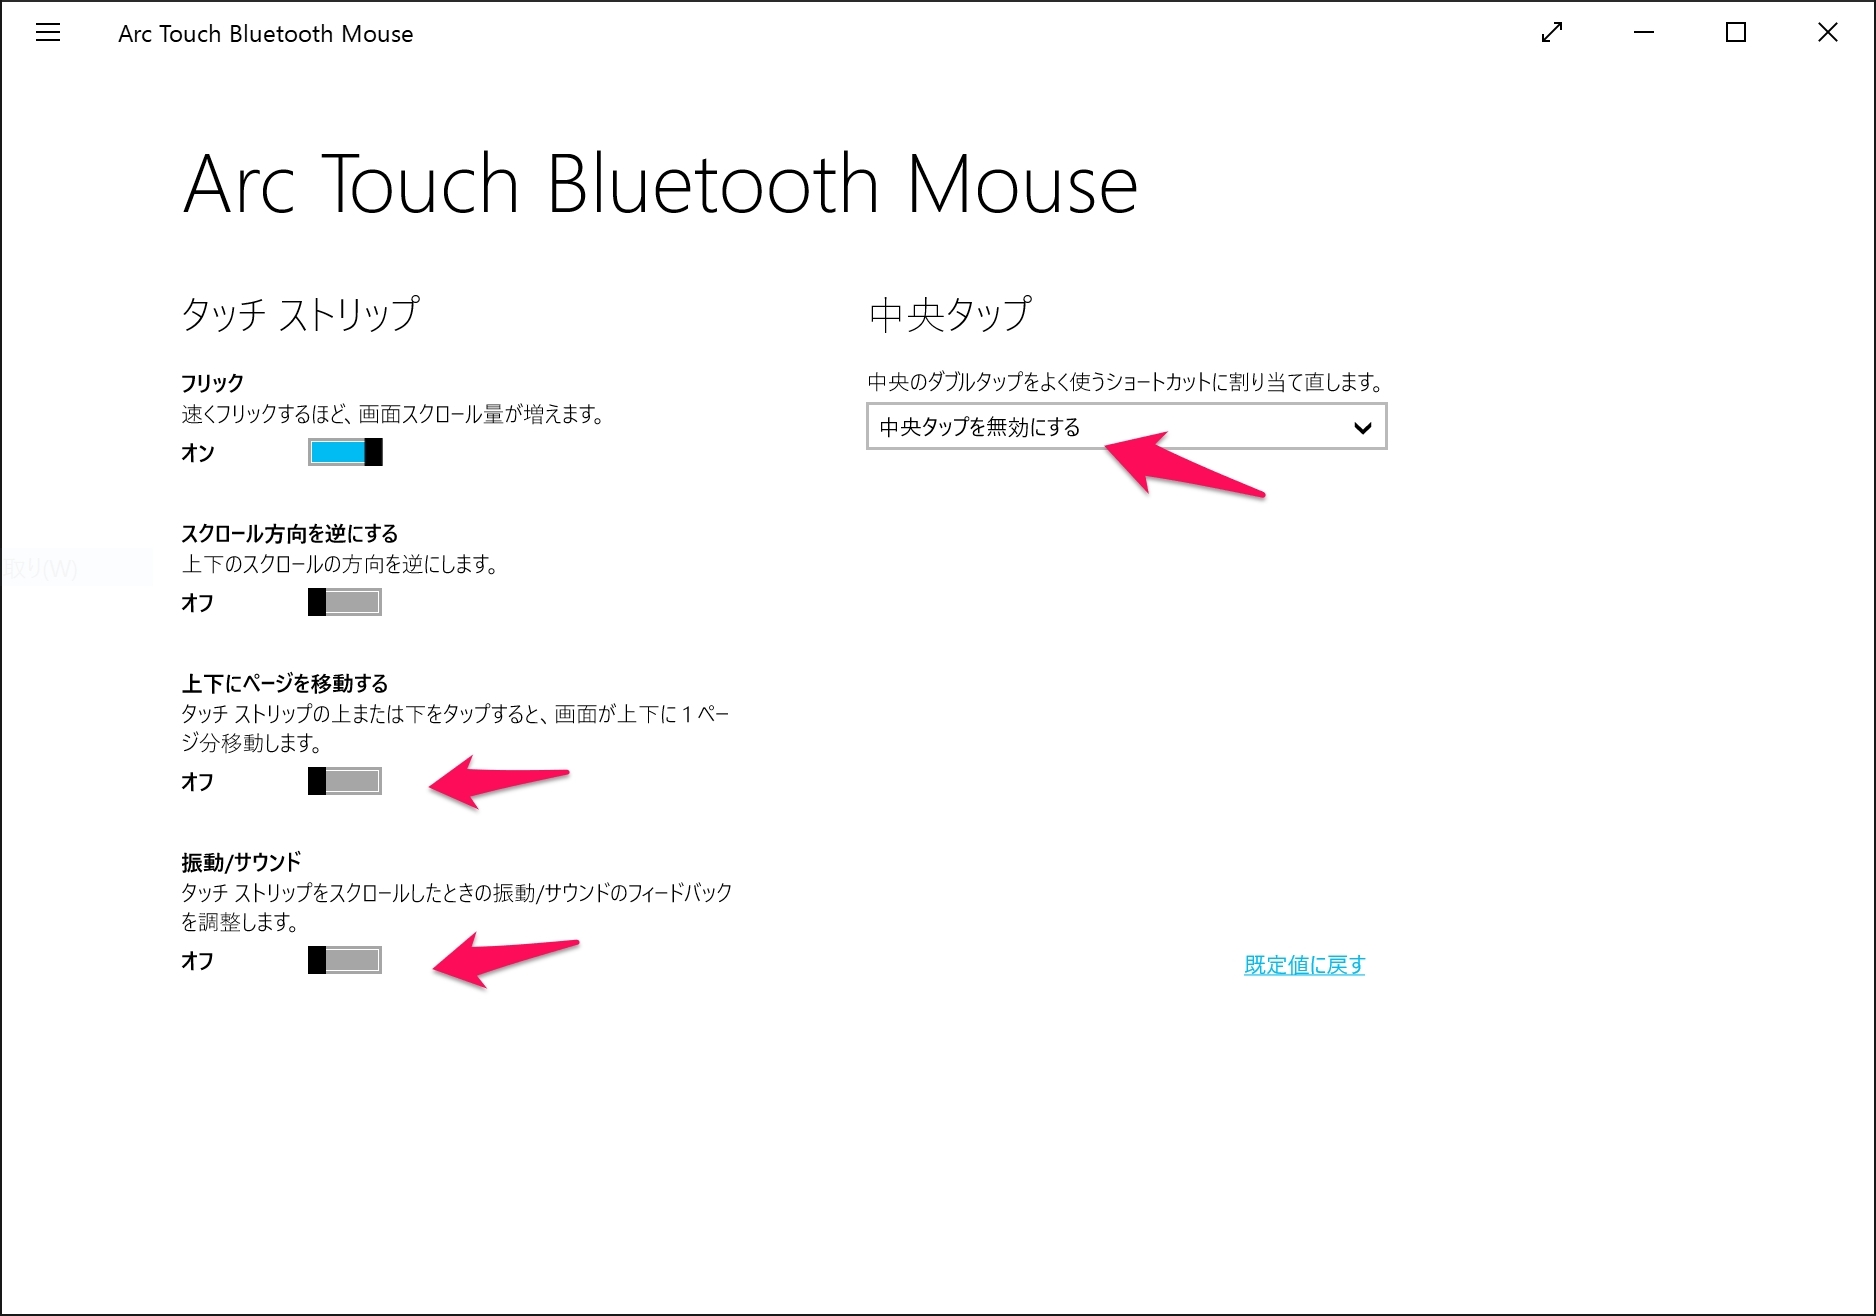 Arc Touch Bluetooth Mouse 設定